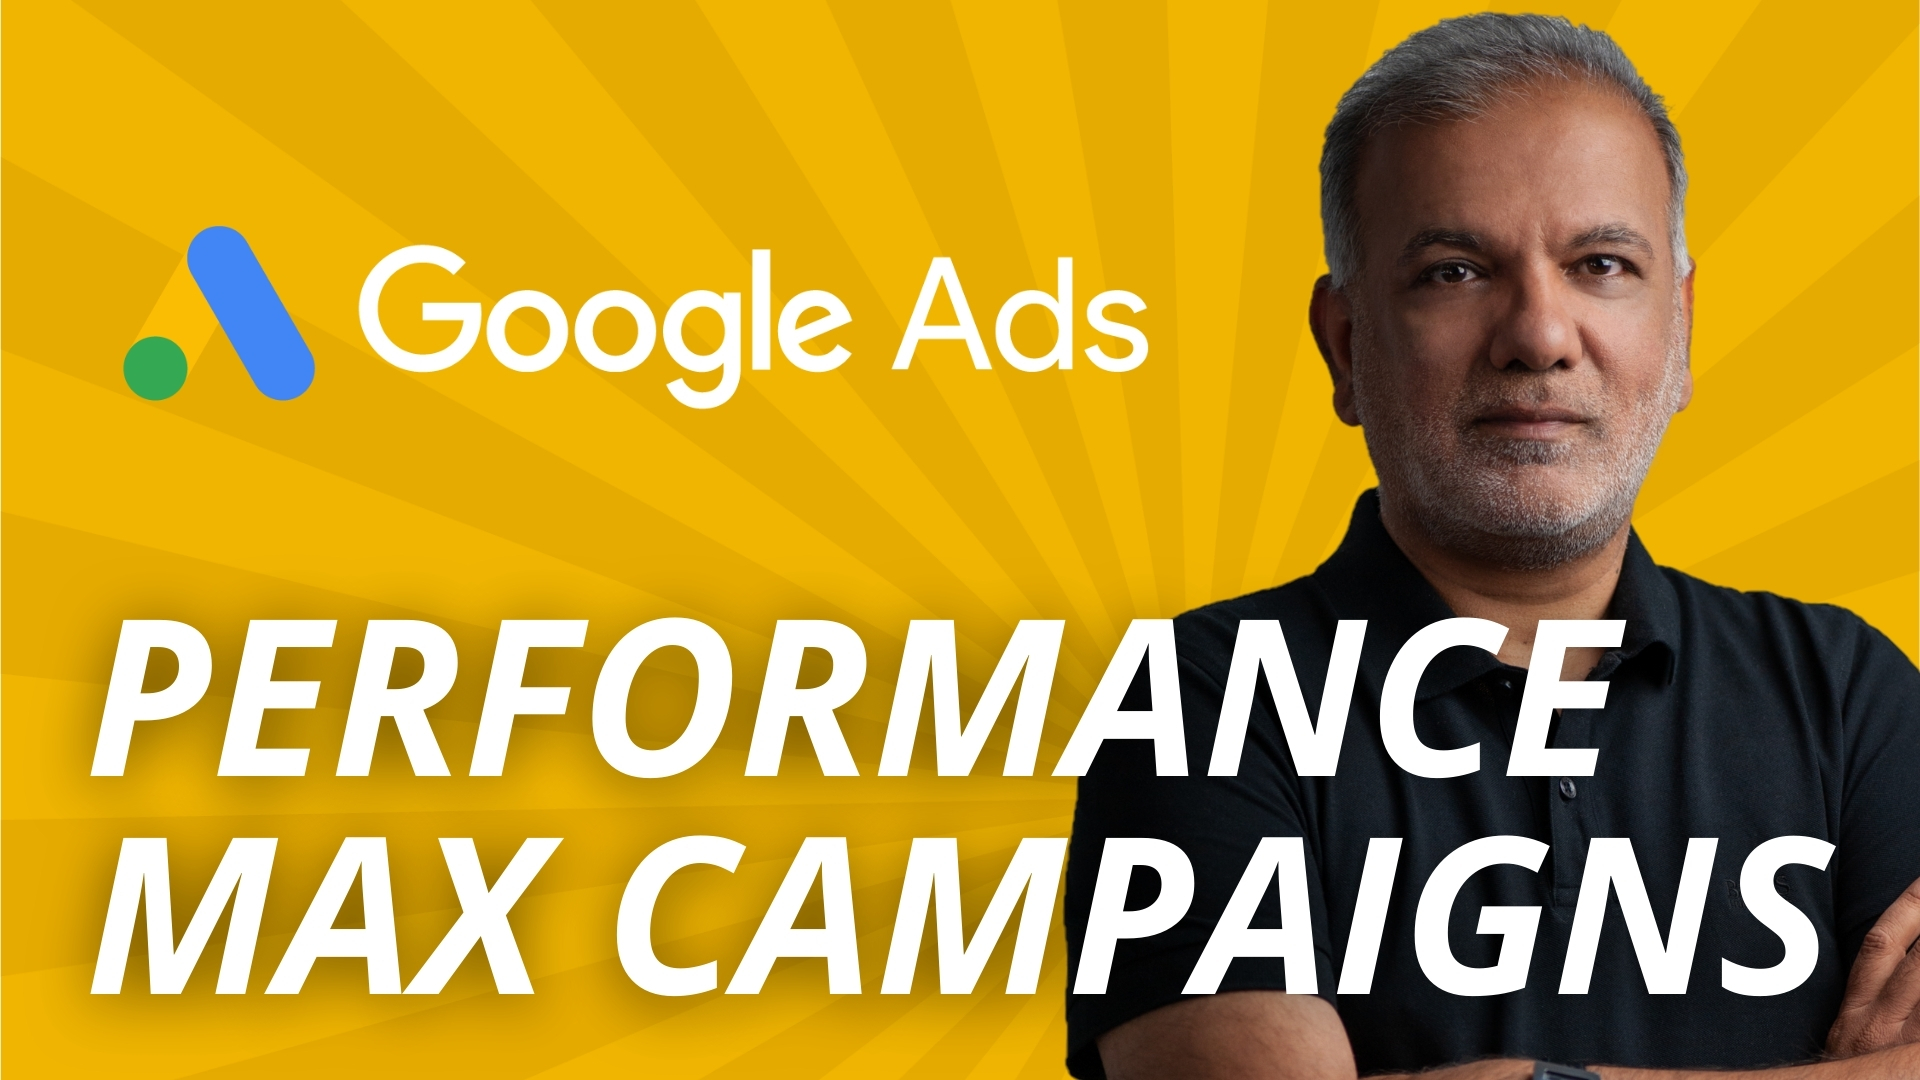 Google Ads Performance Max Campaigns Best Practices